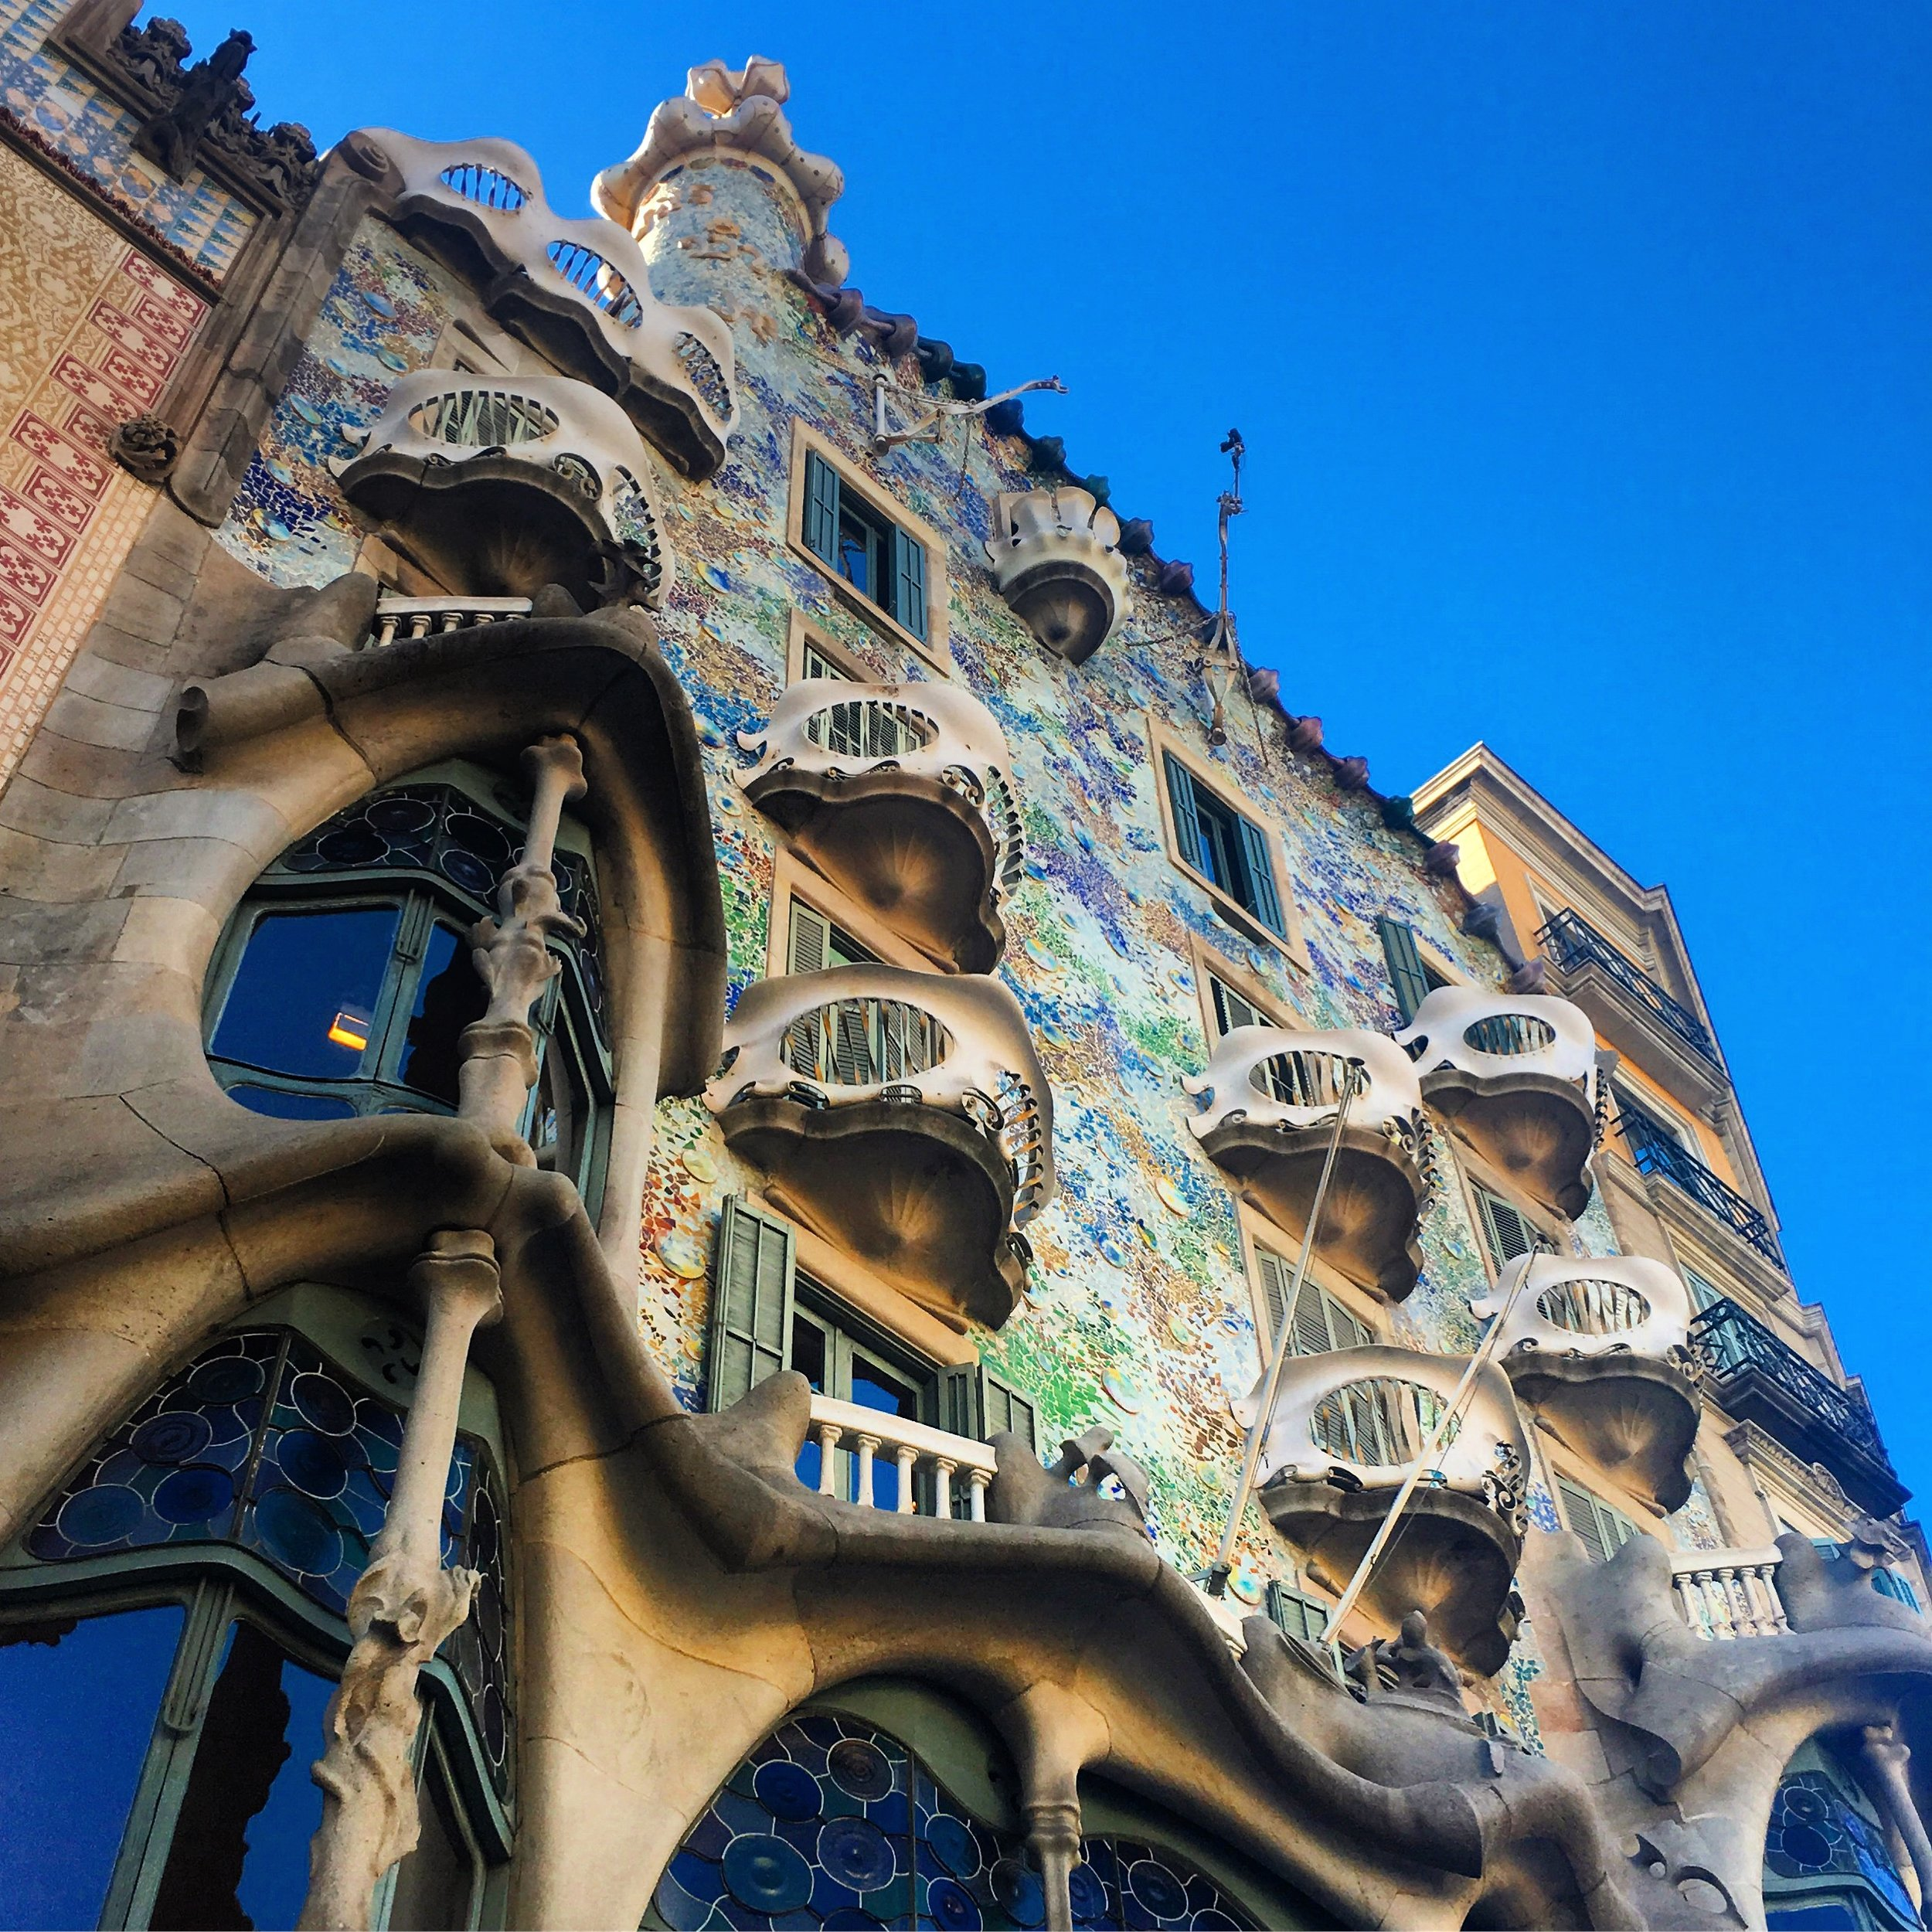 Gaudi's art on the buildings throughout the city